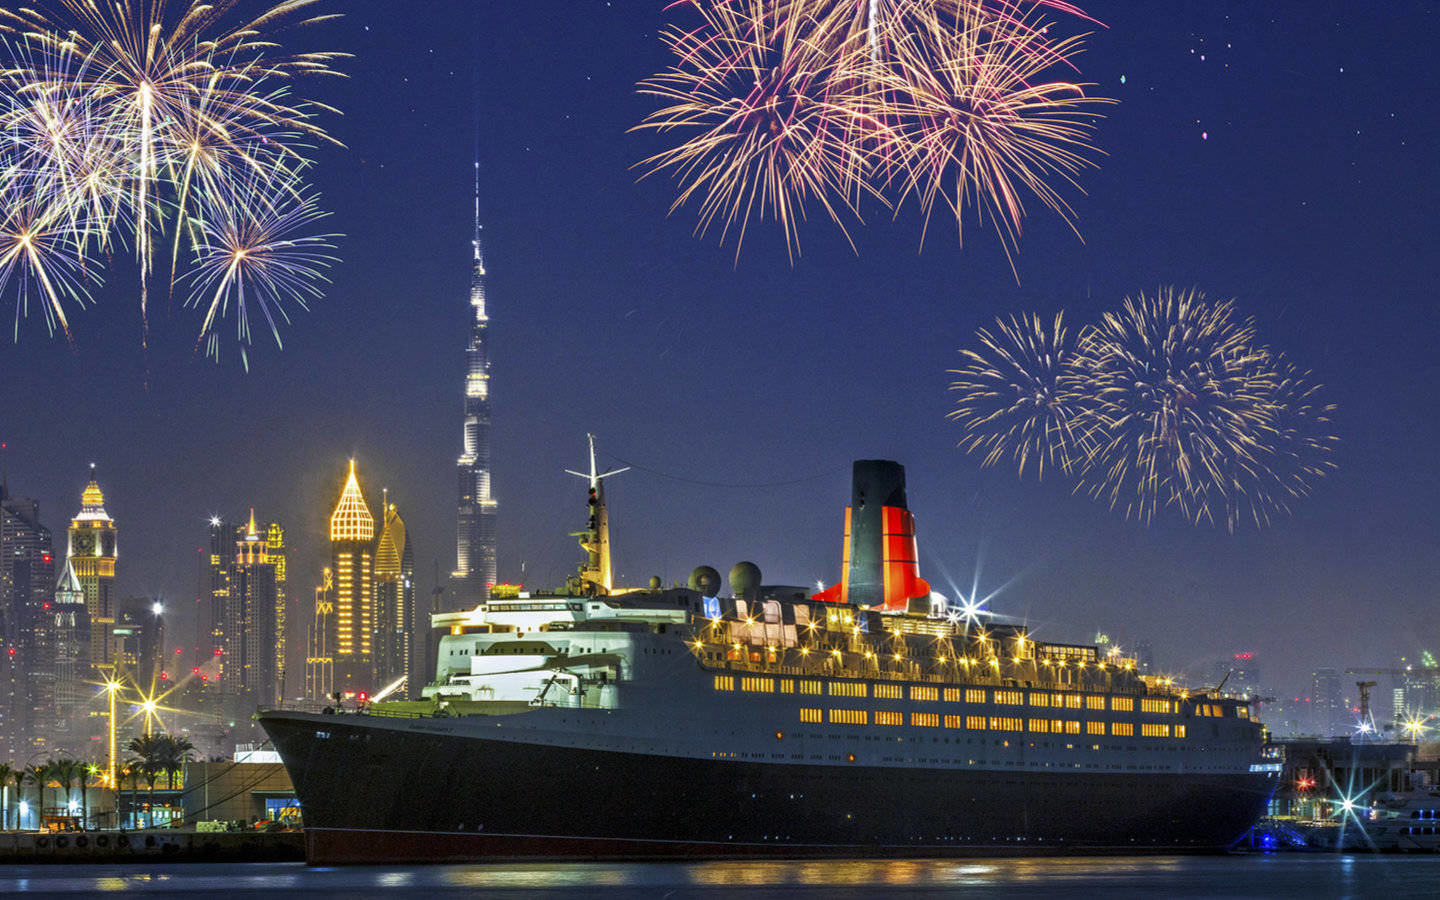 Queen Elizabeth 2 for events in Dubai in December